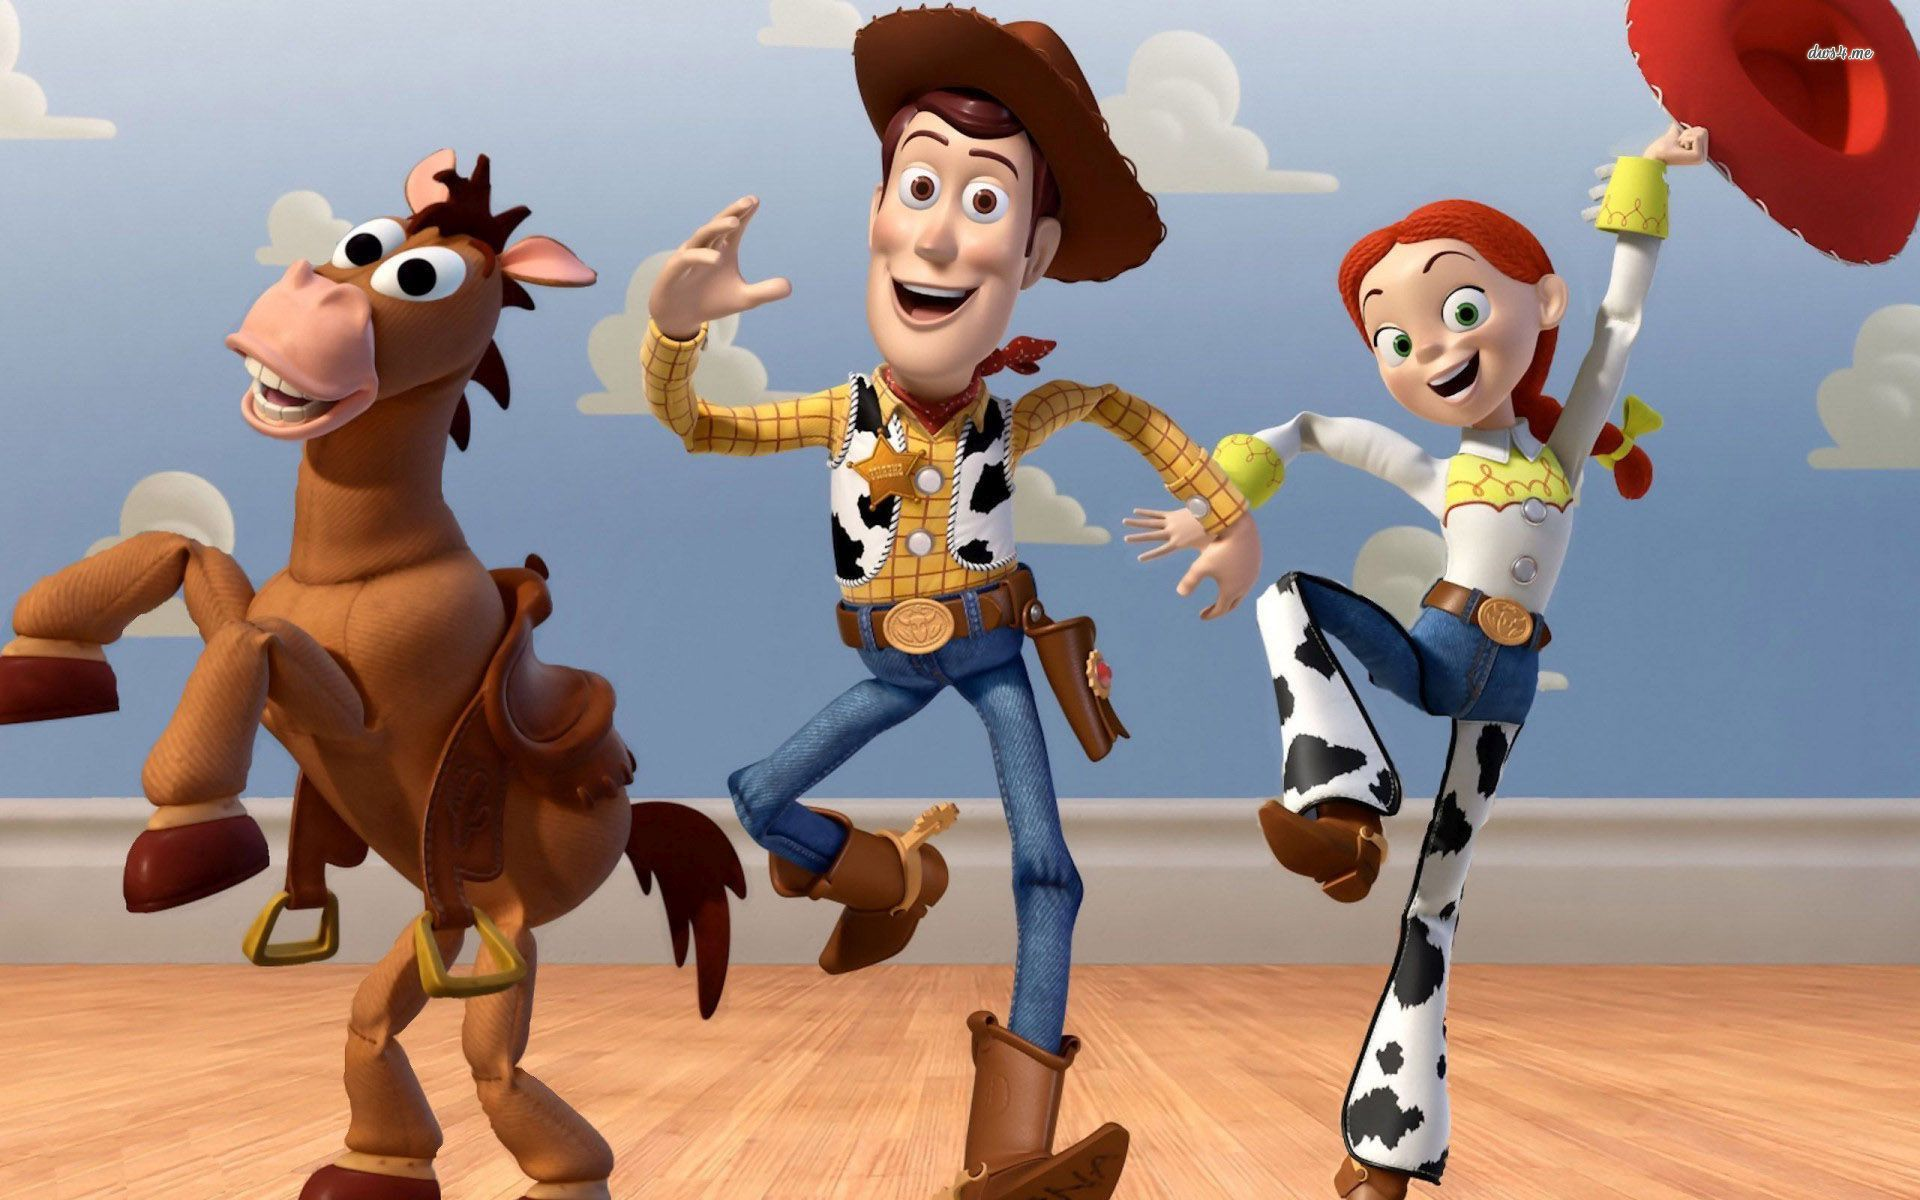 Free Download Toy Story Woody Wallpaper Images 1920x1200